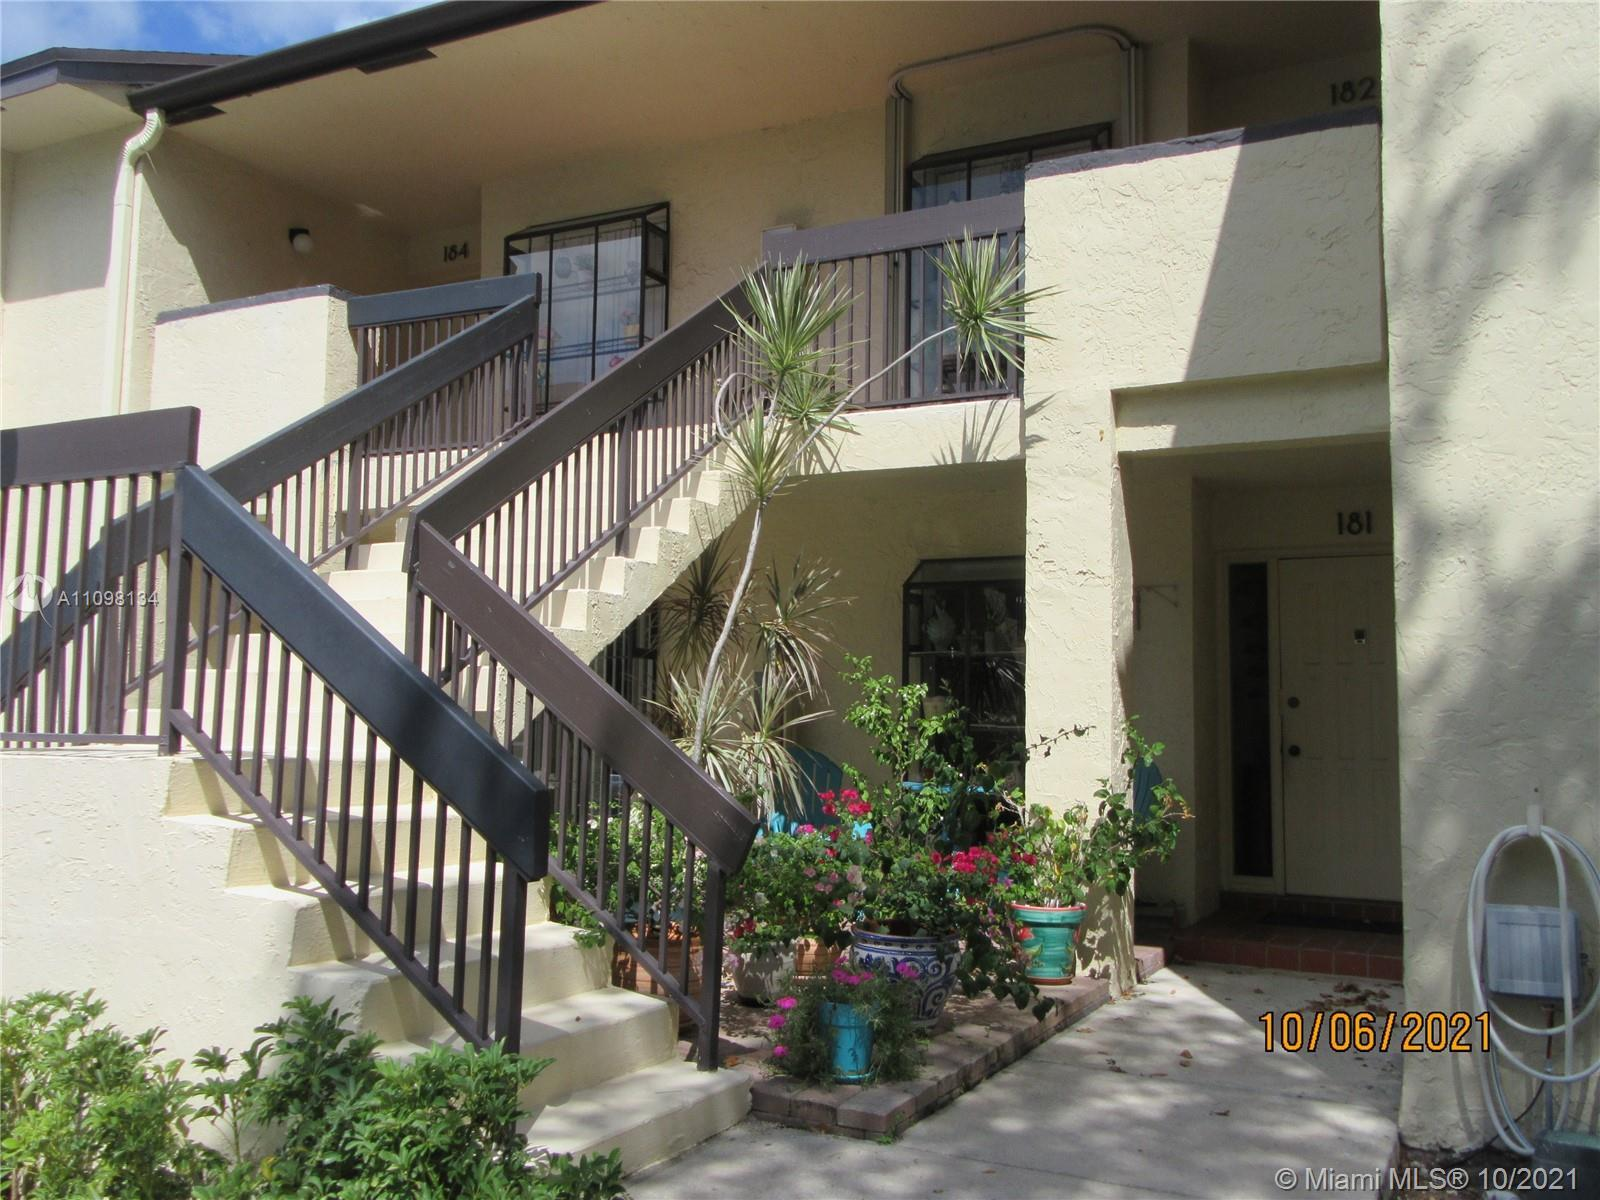 Rare 3 bedroom unit in this beautiful well maintained community. Won't last so call immediately. Man